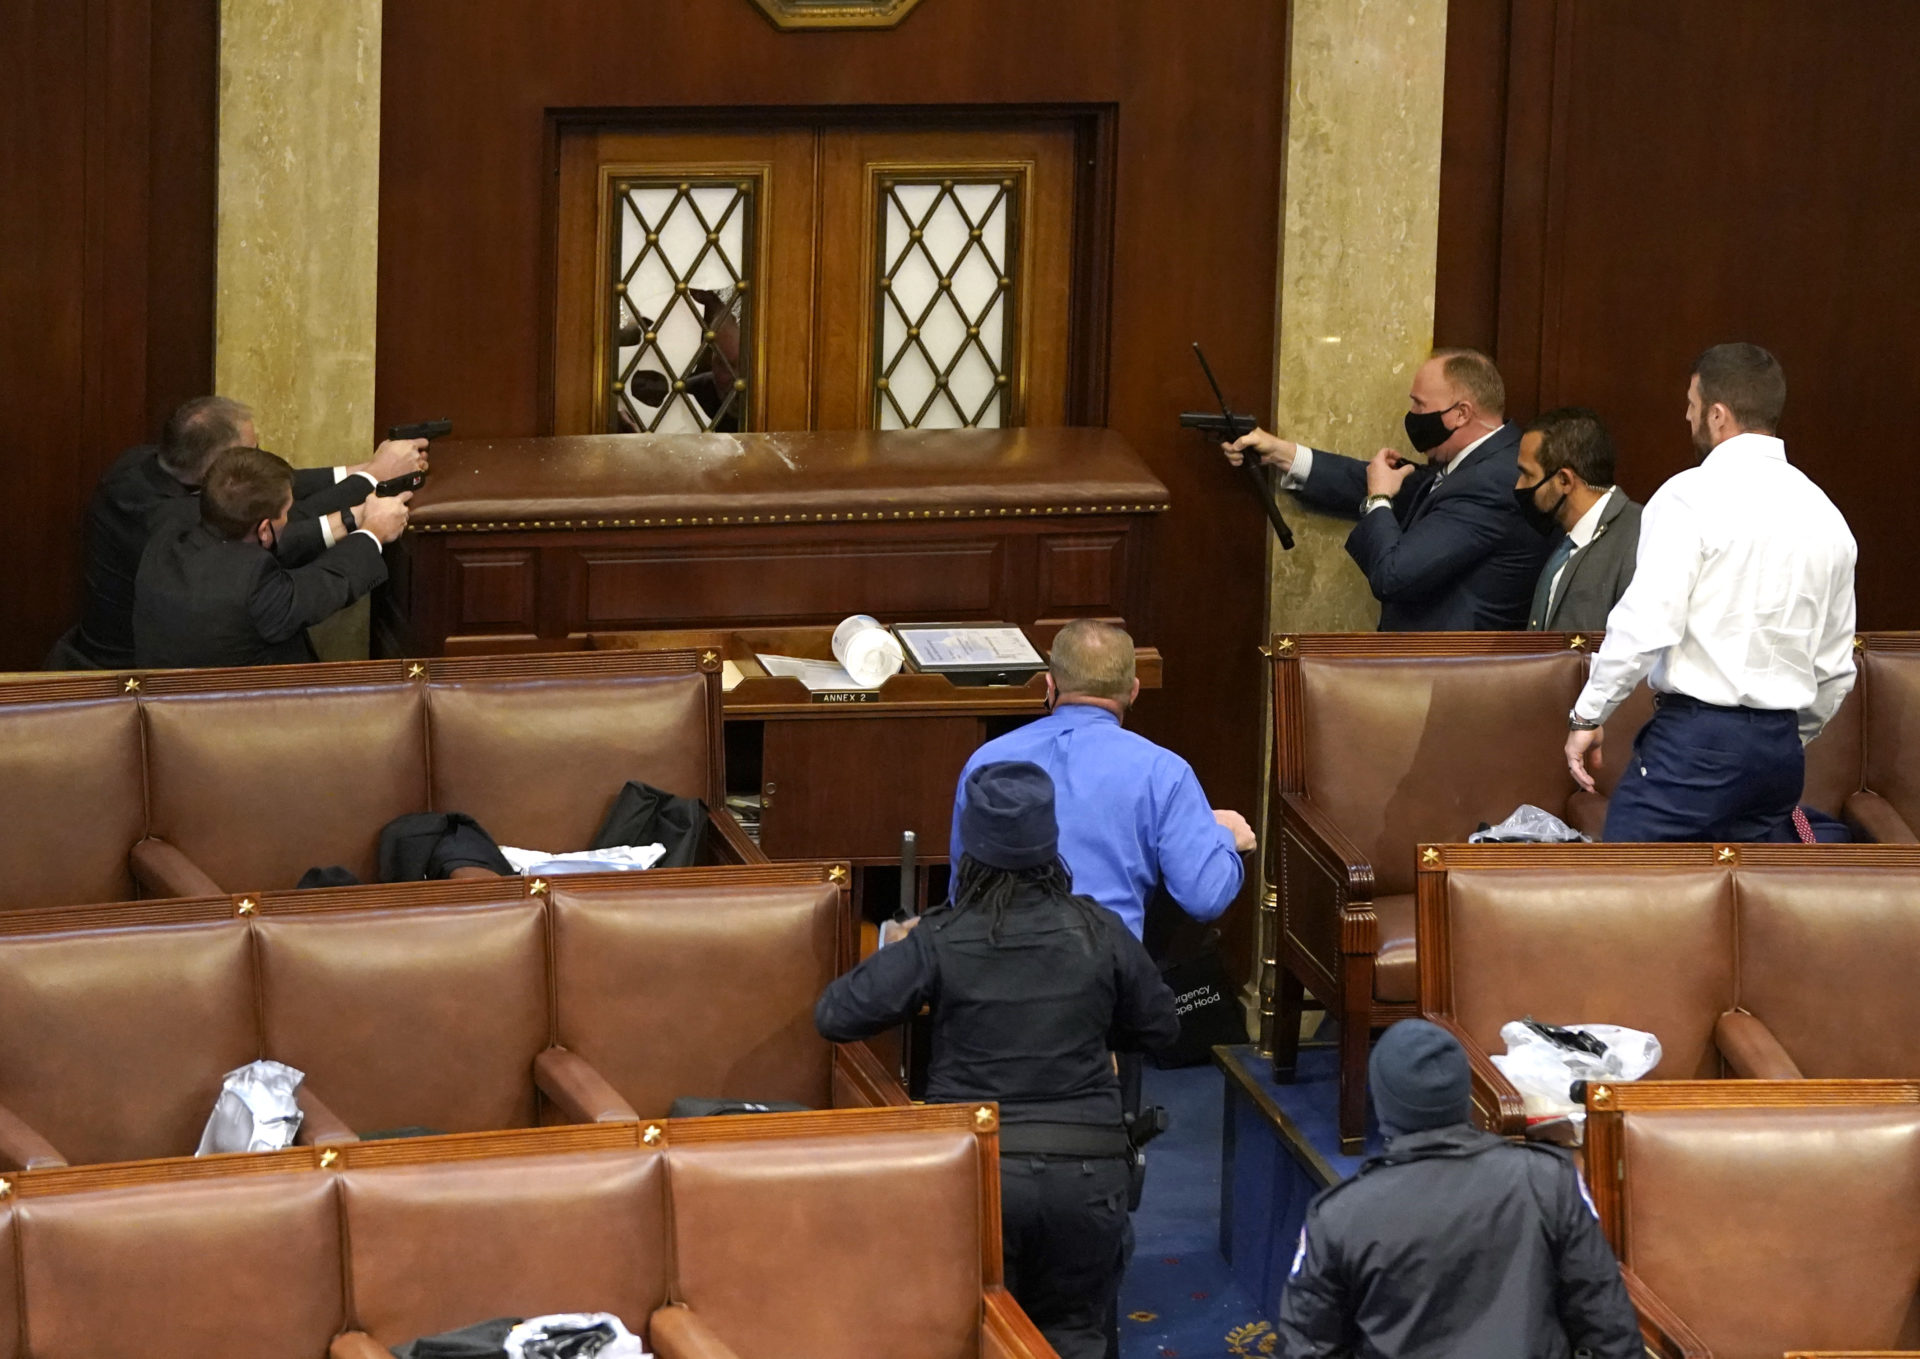 Capitol police officers point their guns at a door that was vandalized in the House Chamber during a joint session of Congress on Wednesday. (Drew Angerer/Getty Images)